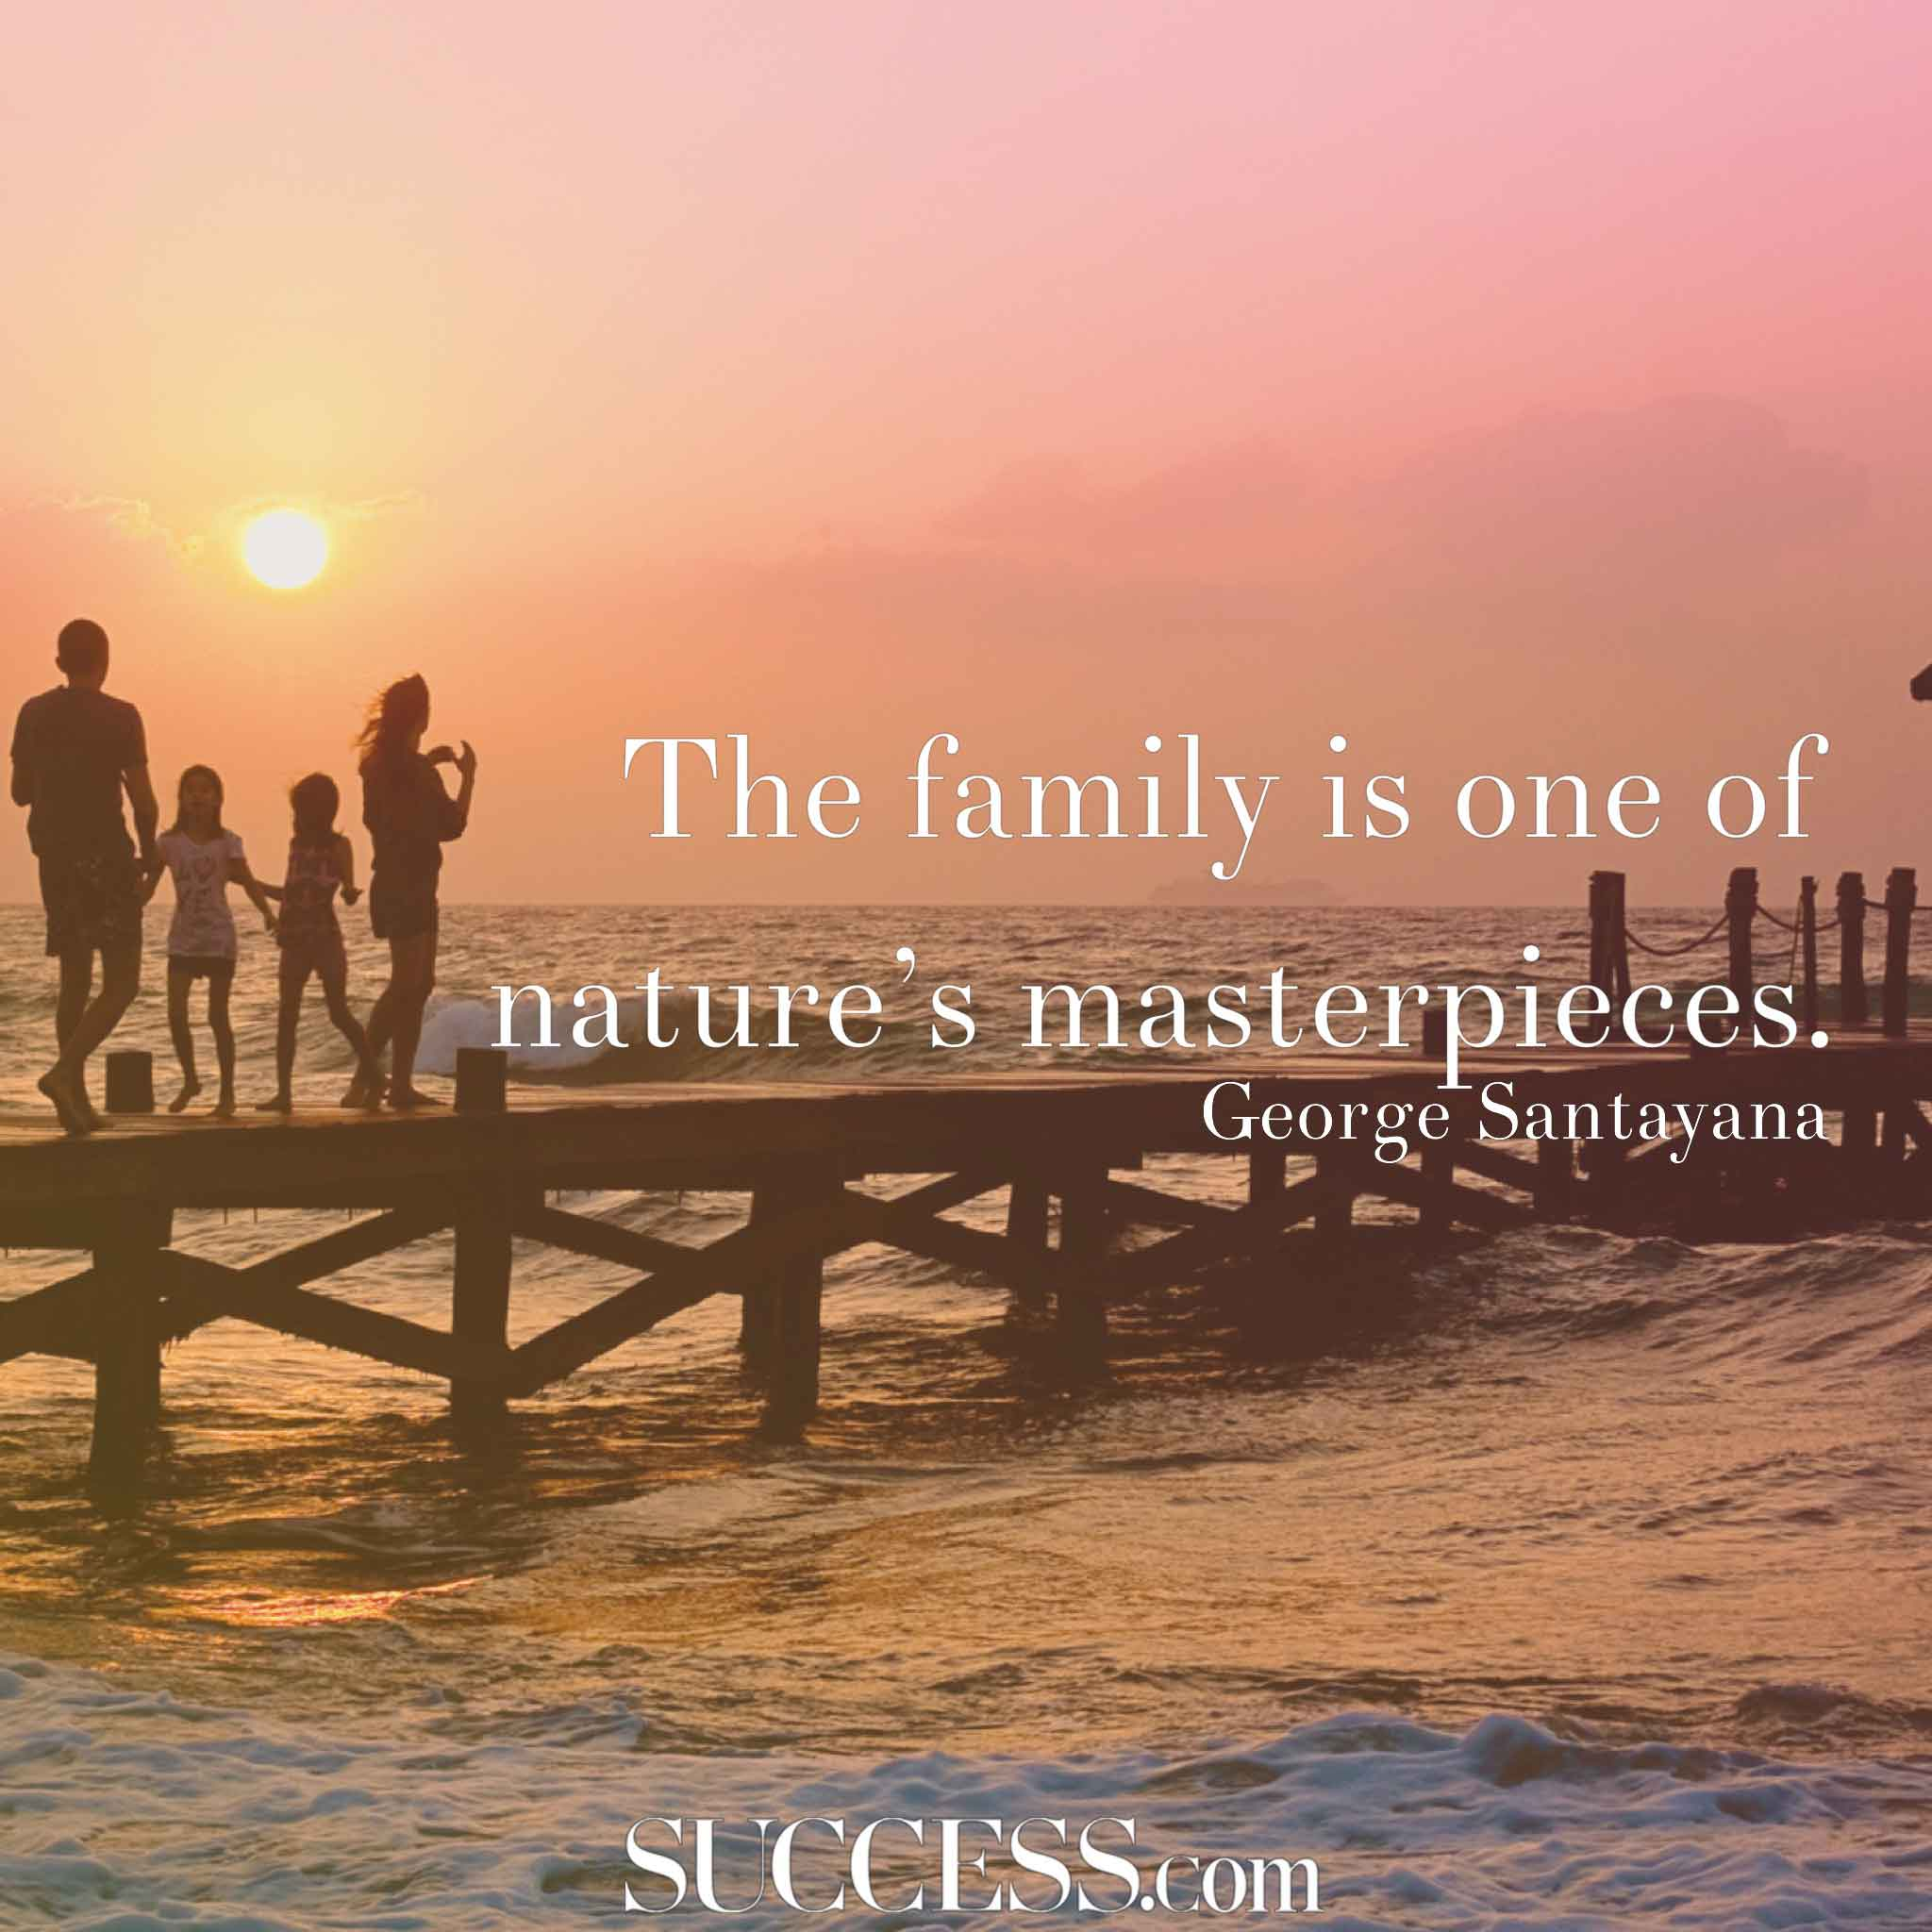 Image of: Wall Decal Success Magazine 14 Loving Quotes About Family